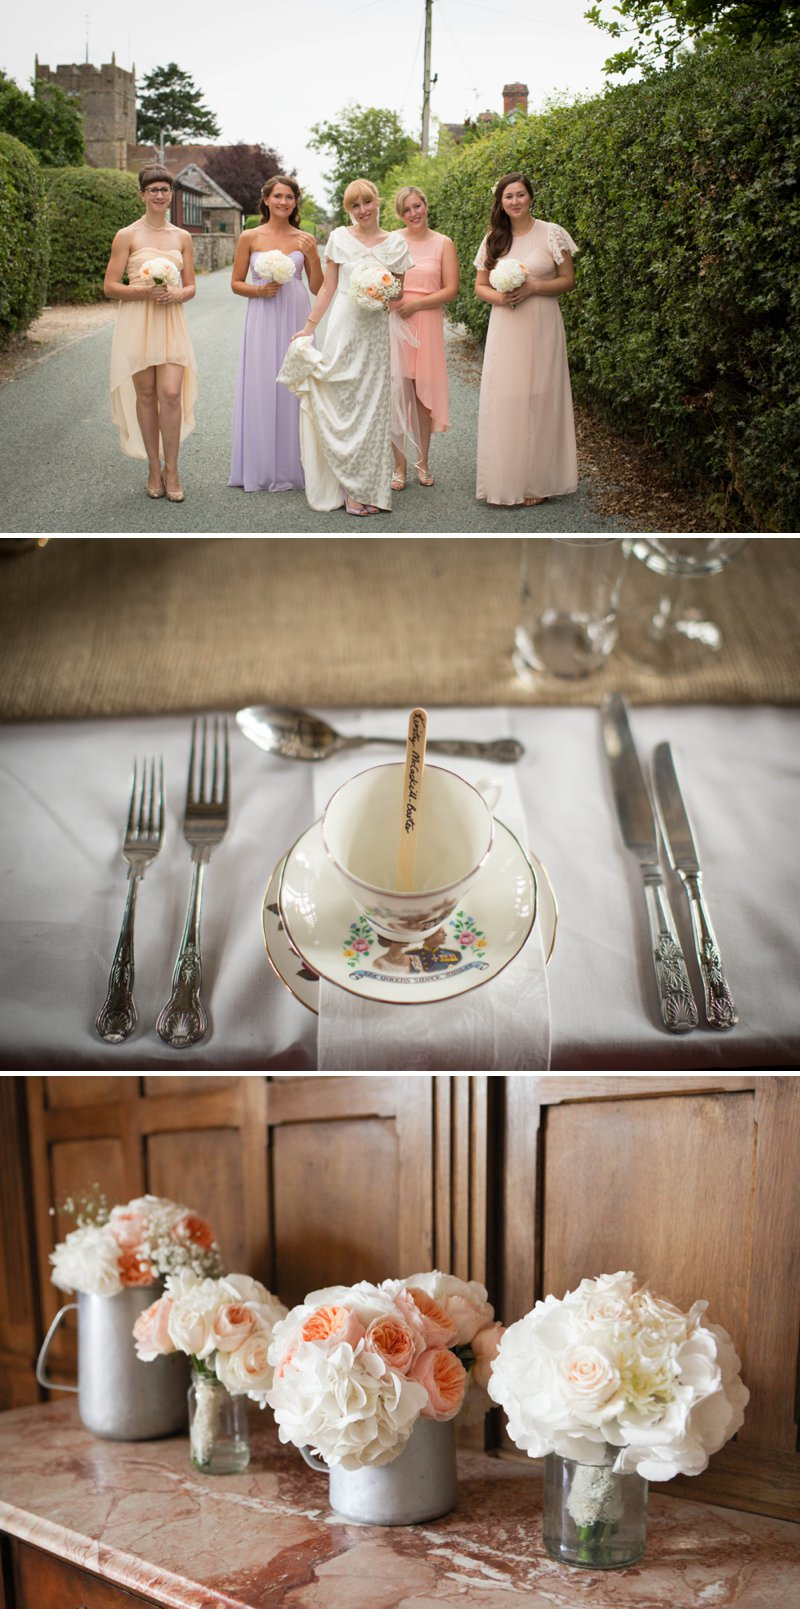 Vintage Inspired Church Fete Themed Wedding At The UKs Largest Village Hall 3